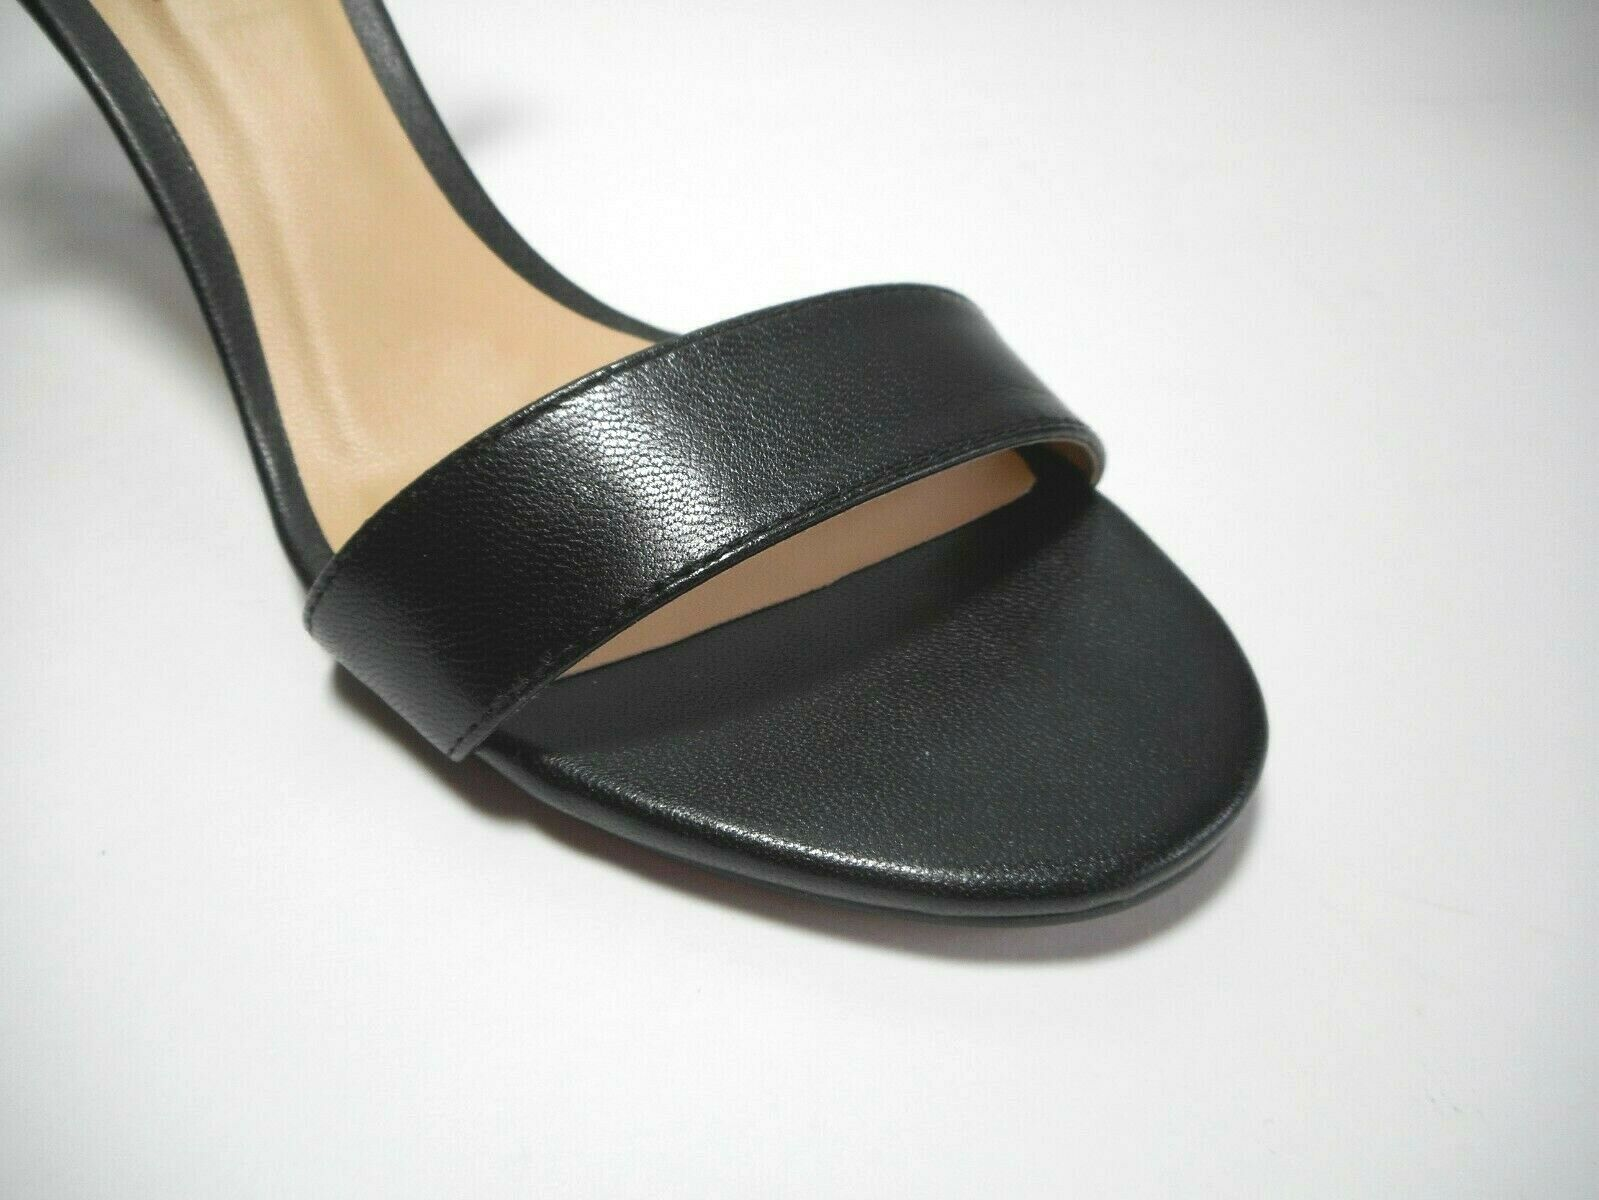 BRAND NEW STEVE MADDEN Size 8.5M Black Leather Leather Leather Ankle Strap Pumps shoes 3cee3f